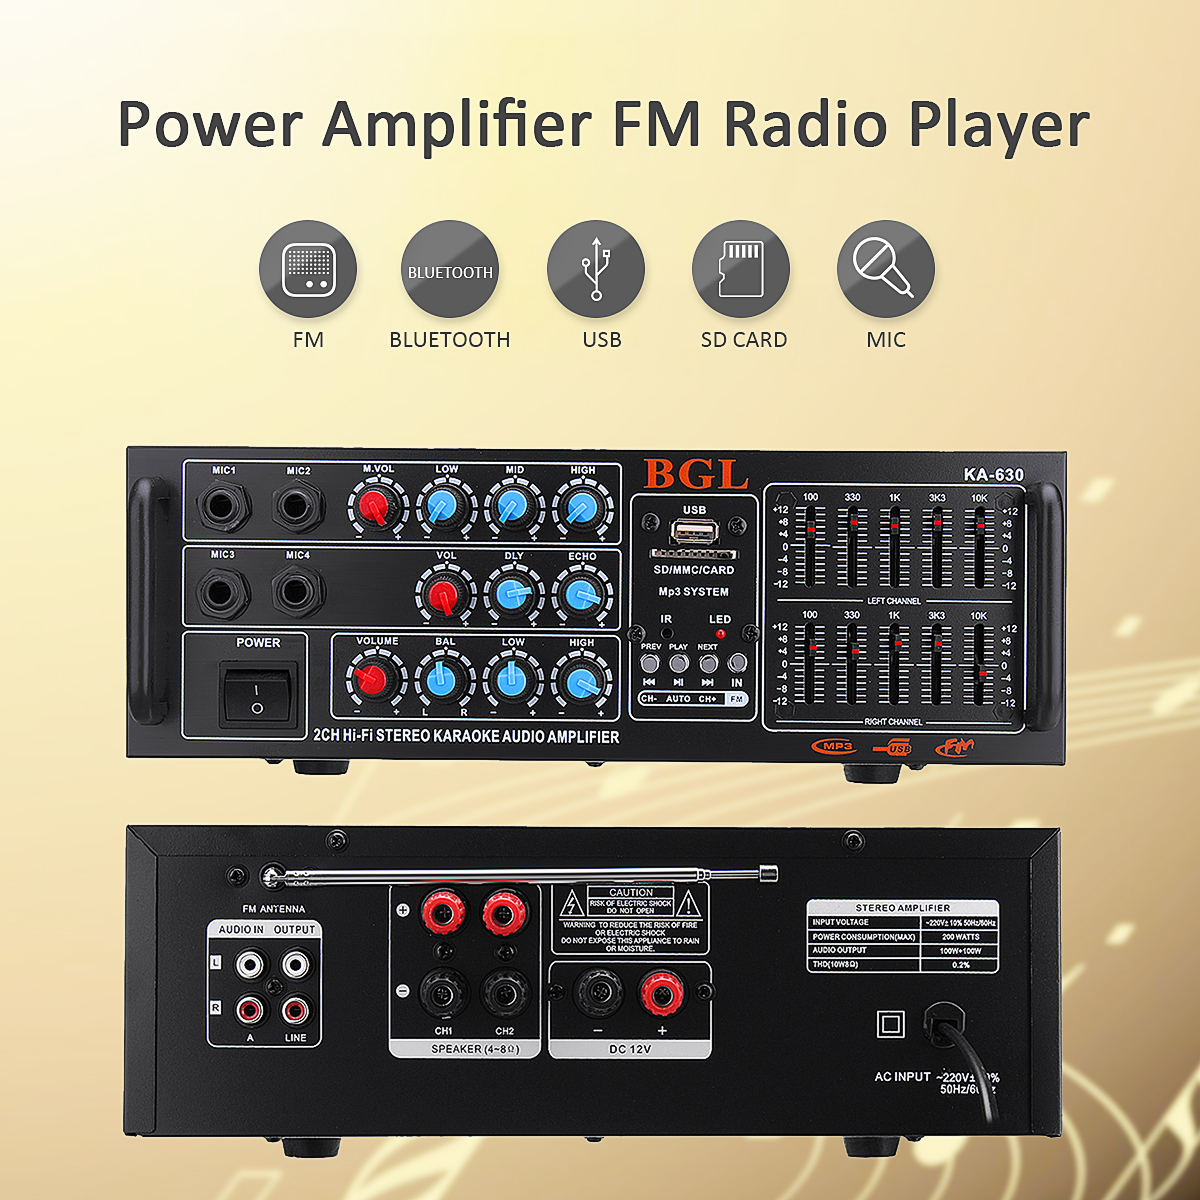 12V/ 220V Audio Car Amplifier Bluetooth Stereo Power Amplifier Karaoke Home Theater Amplifiers Speaker FM Radio Player 300w 300w 2 channel hifi audio stereo power amplifier bluetooth fm radio car home theater amplifiers music player